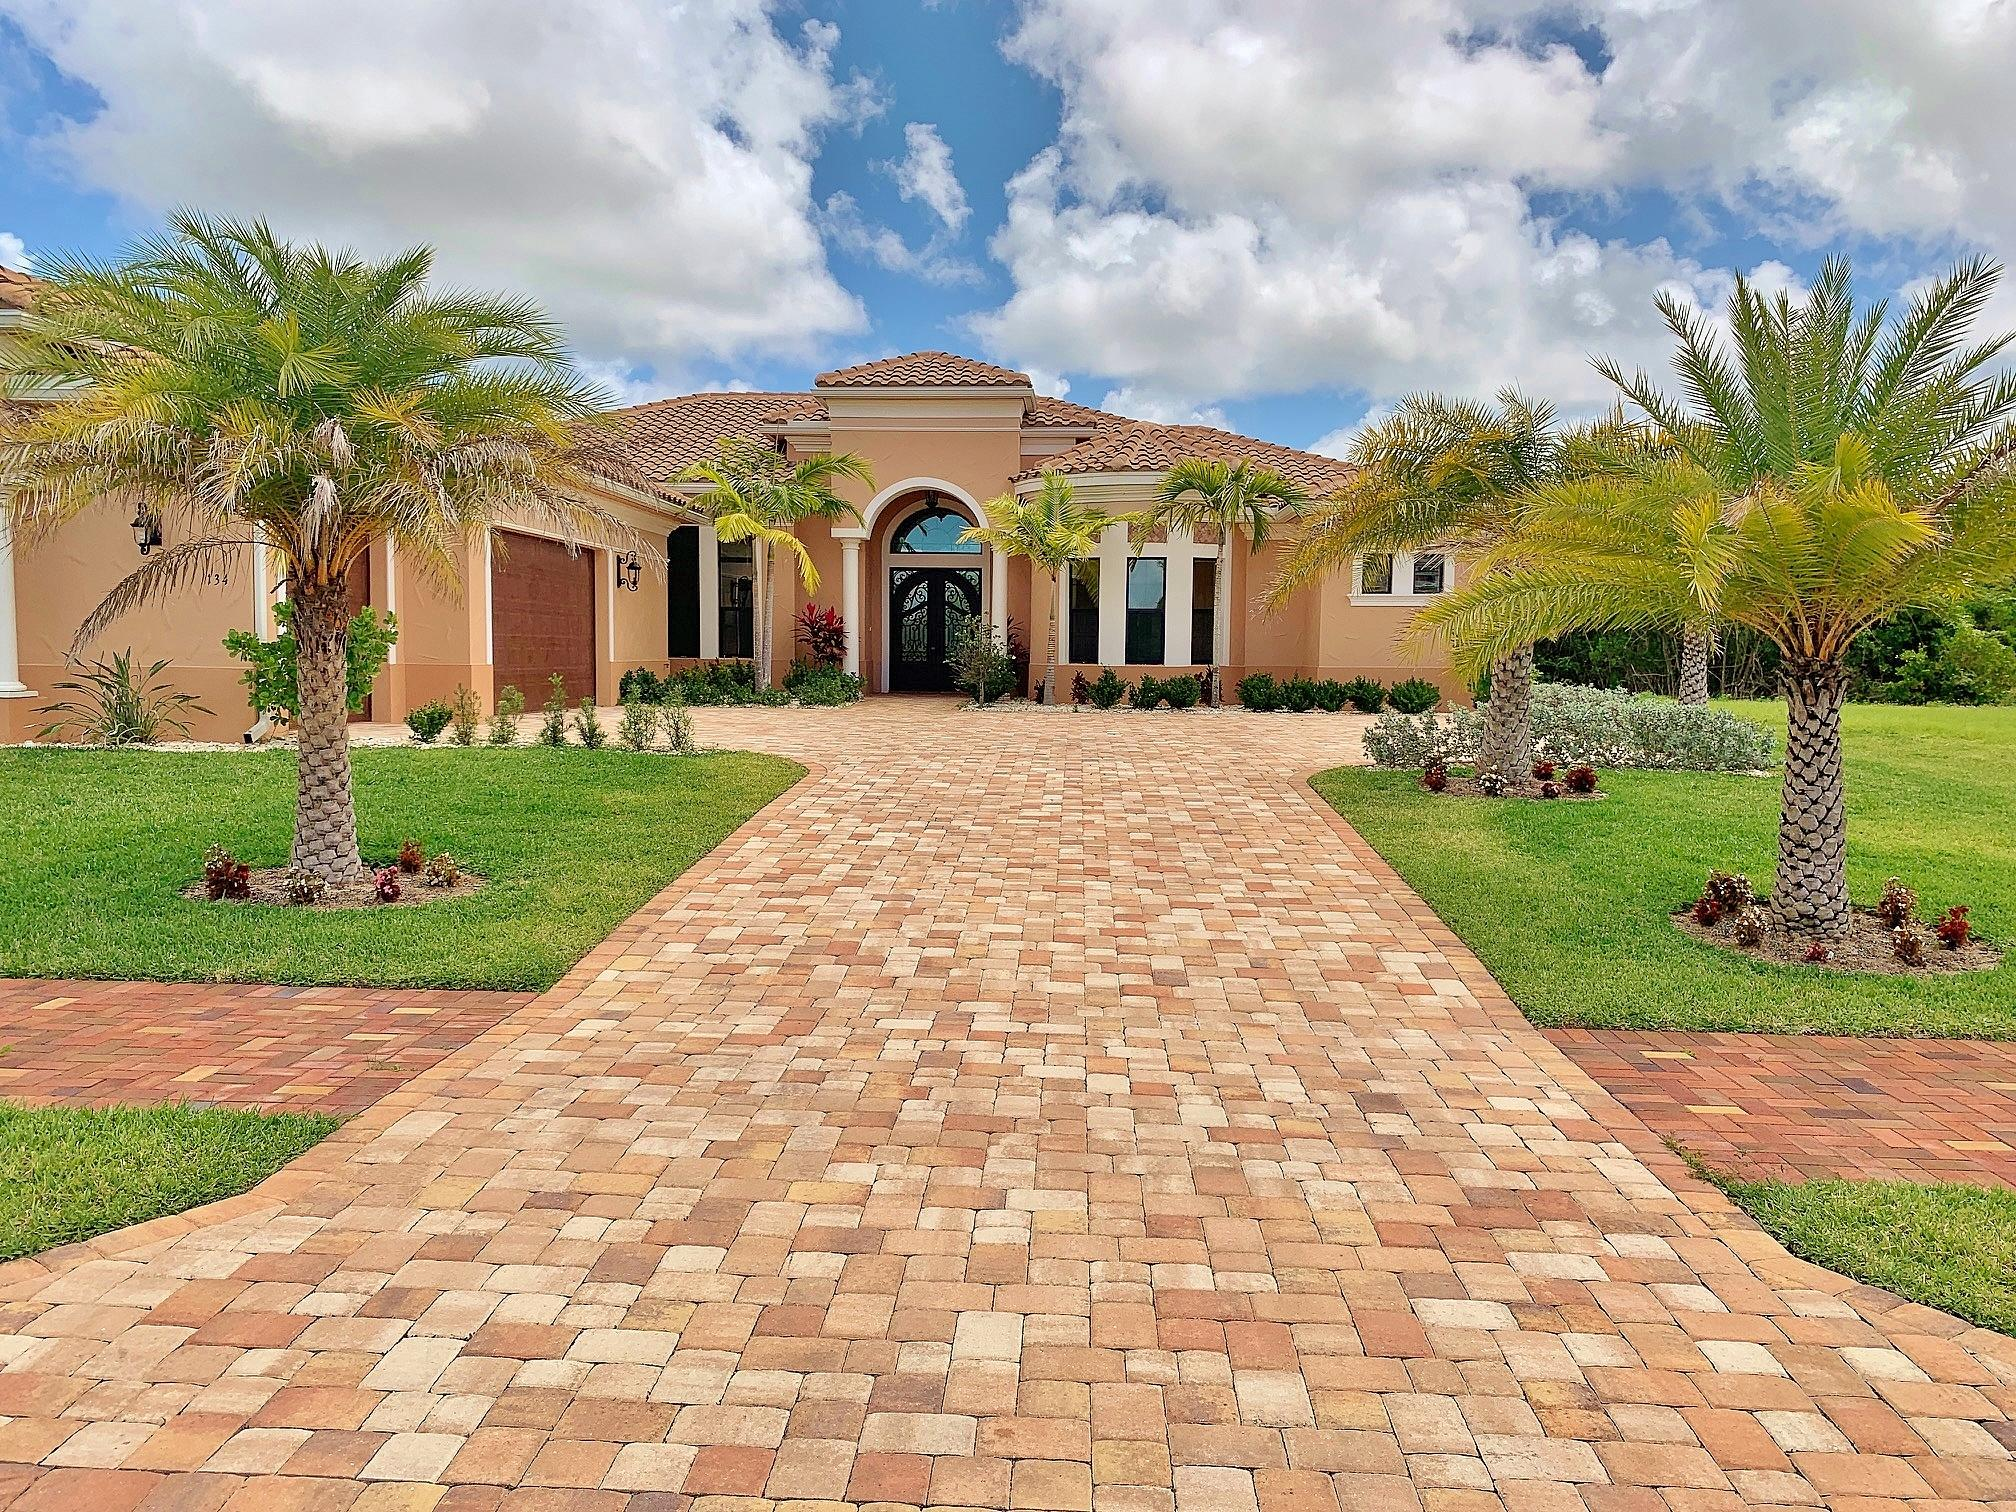 134 SE Fiore Bello, Port Saint Lucie, Florida